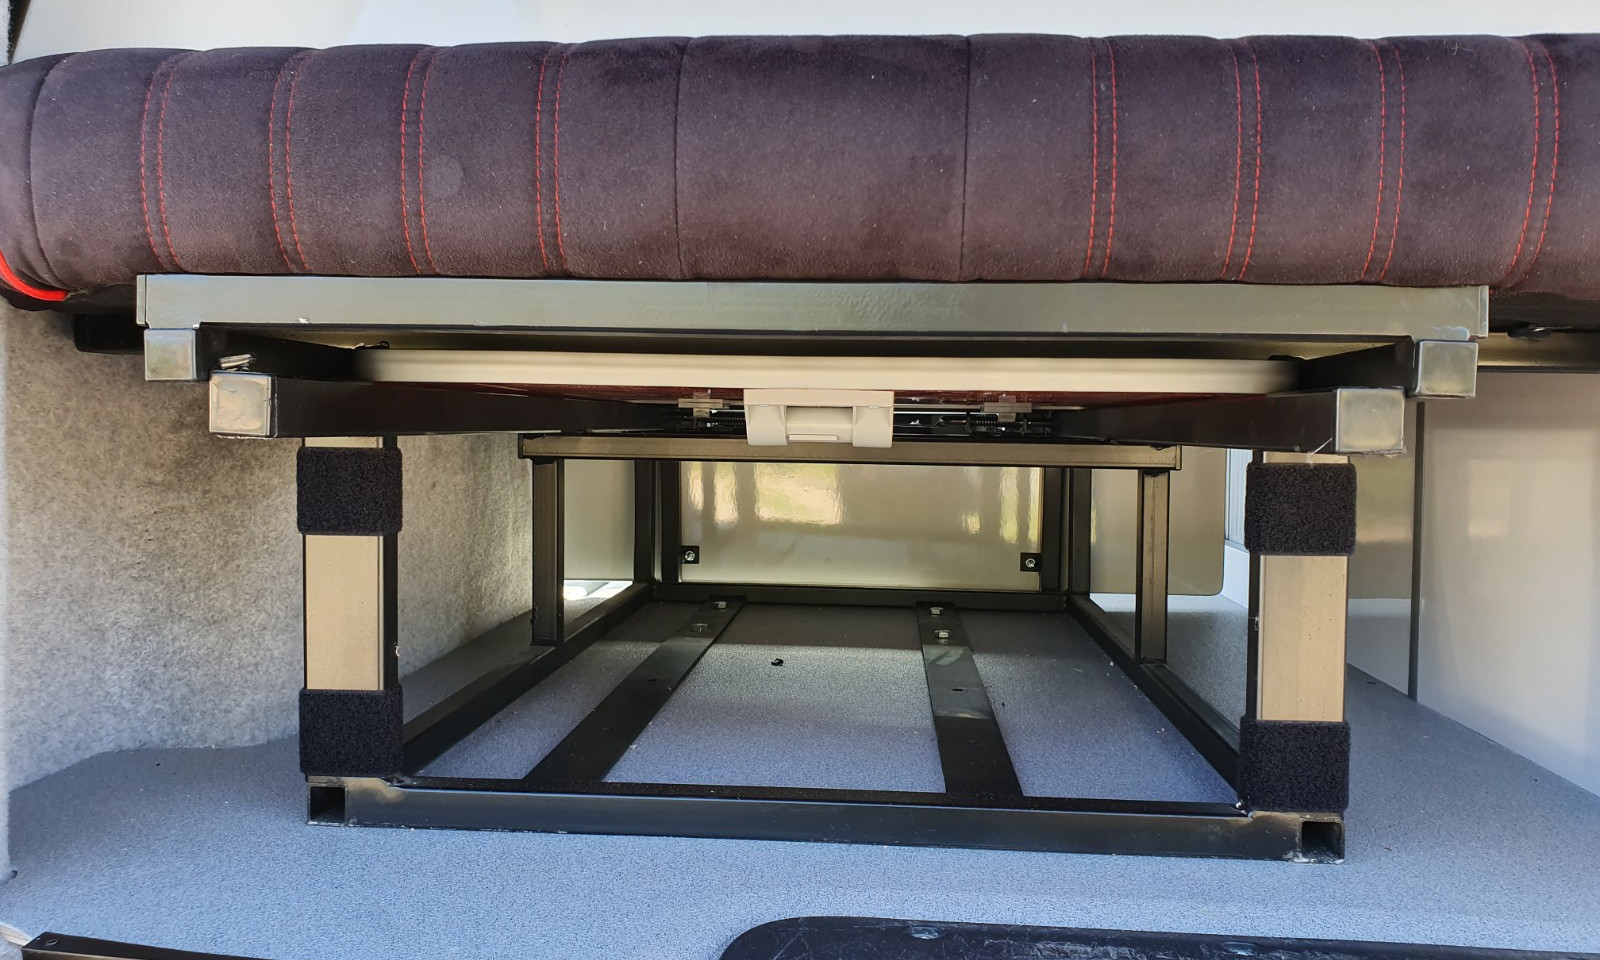 NV200- Roof and 38 RR Side Conversion(26